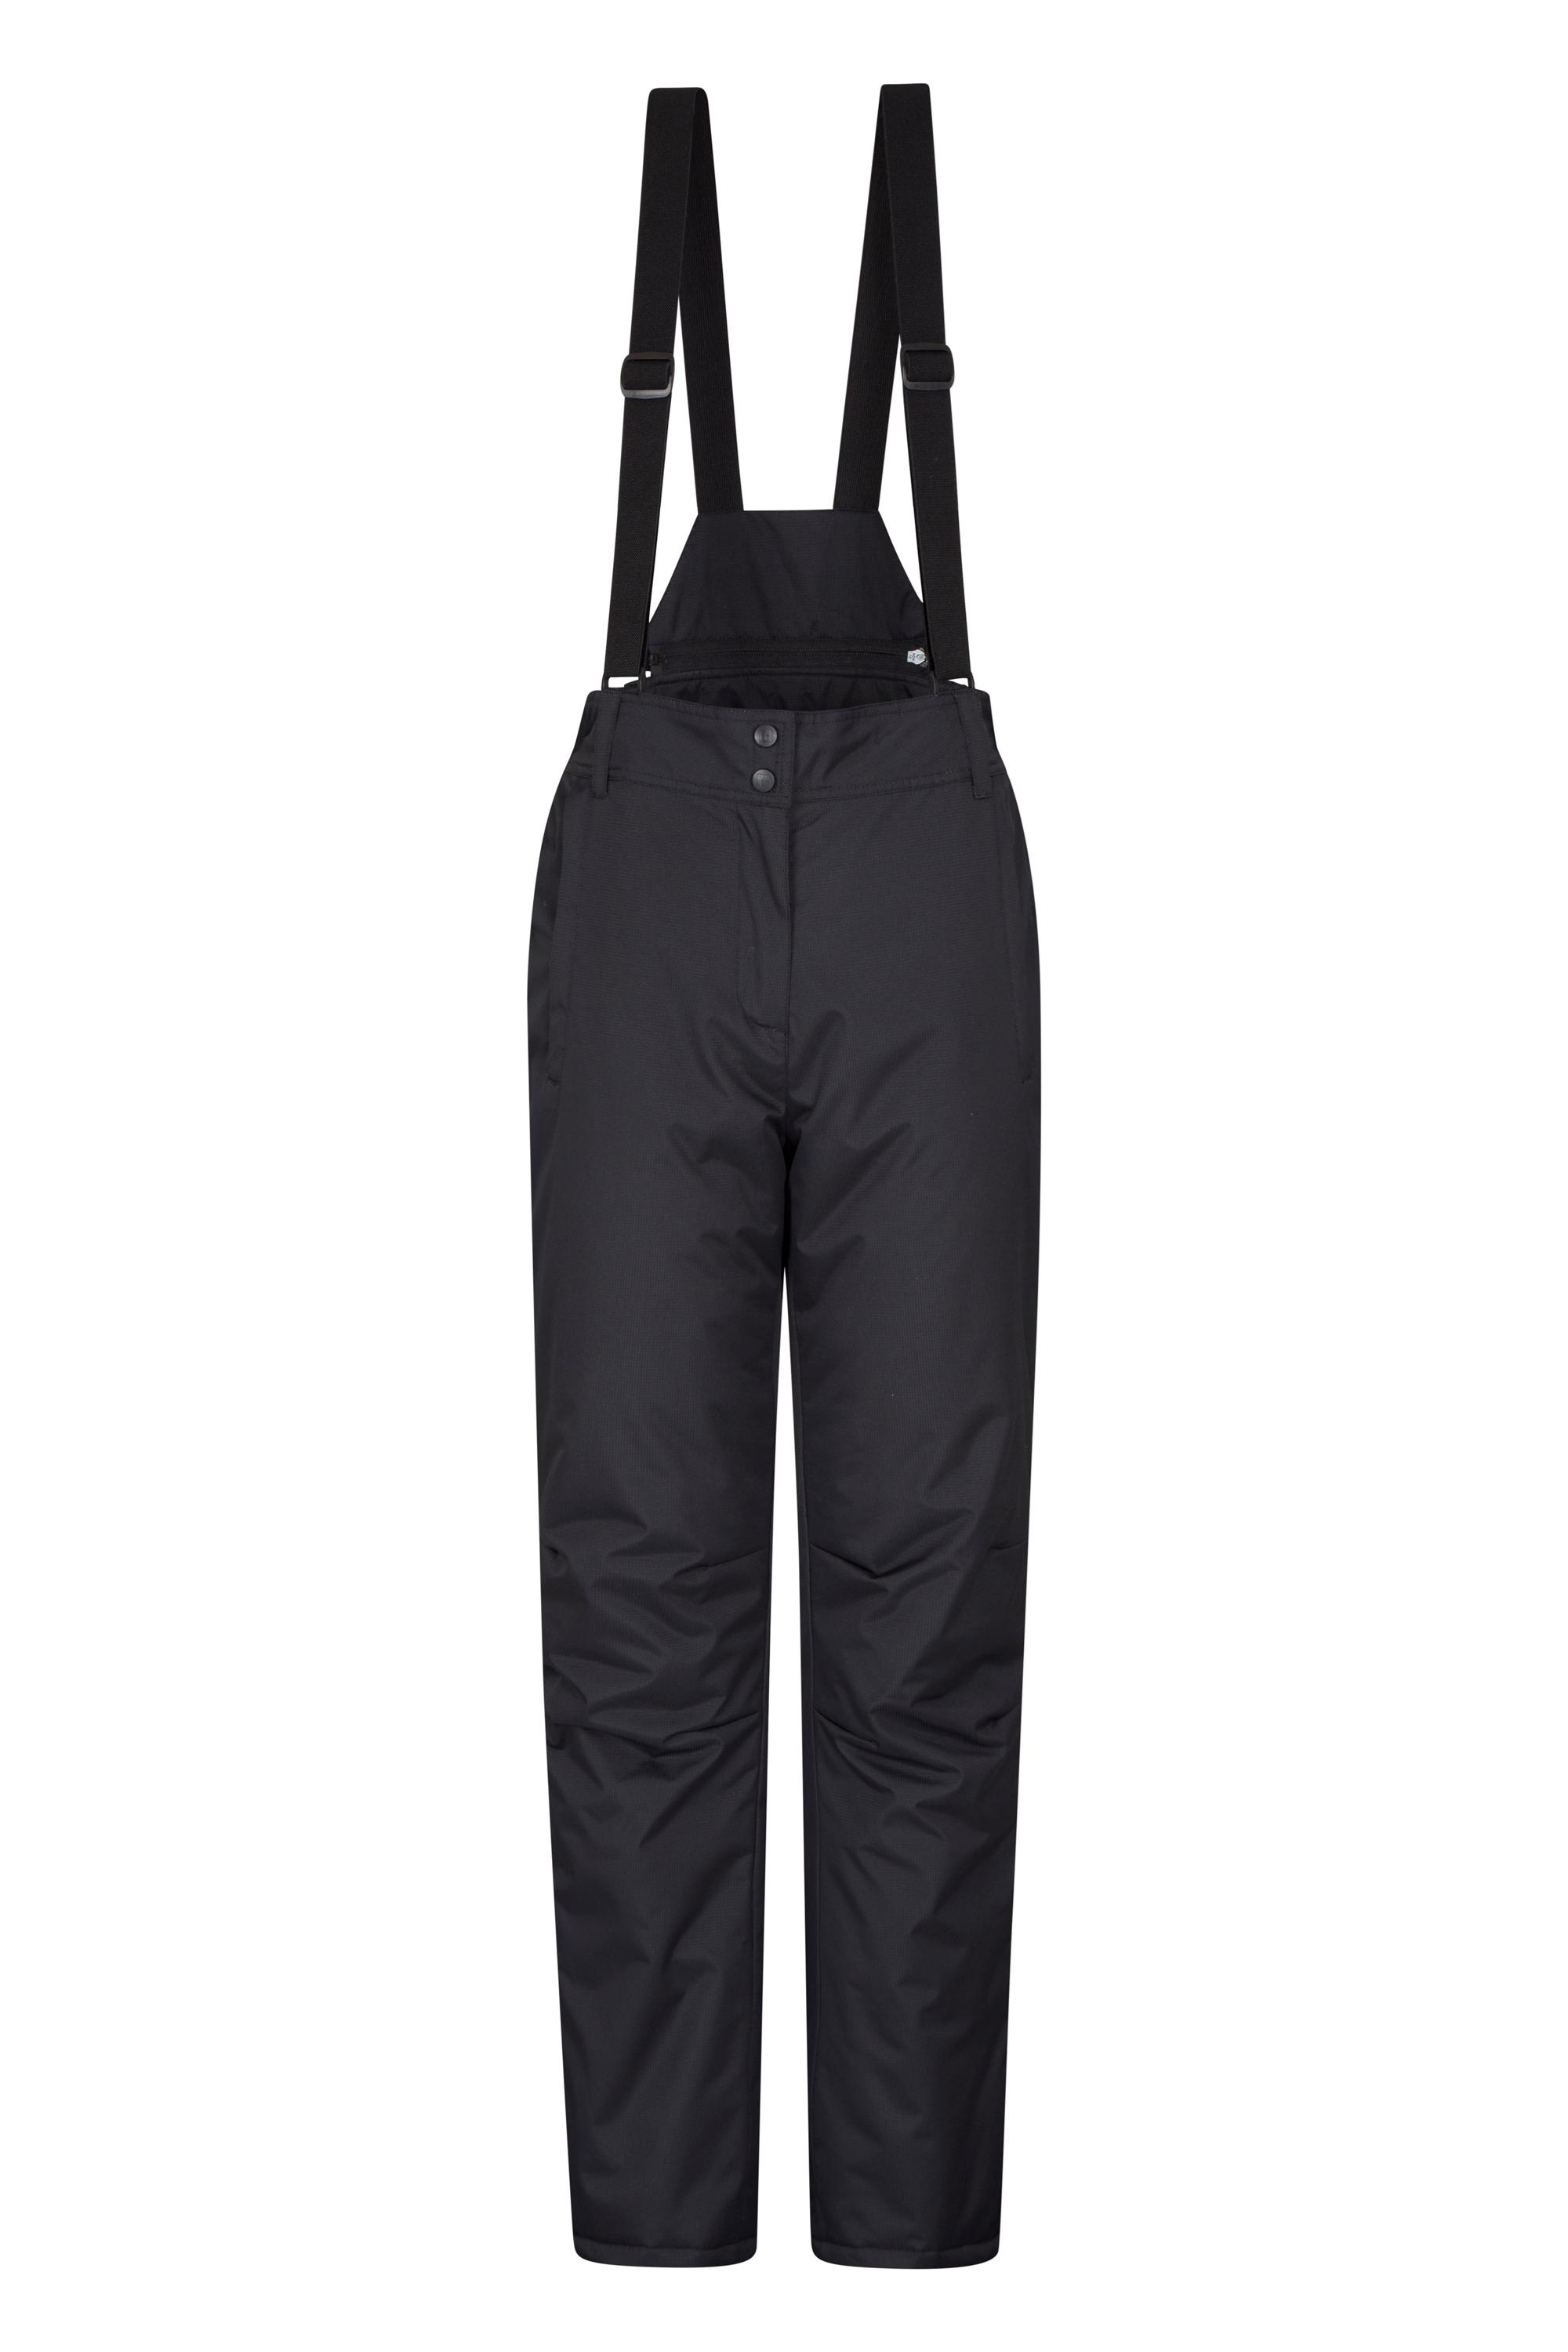 Ski Pants: Italian Ski Resorts